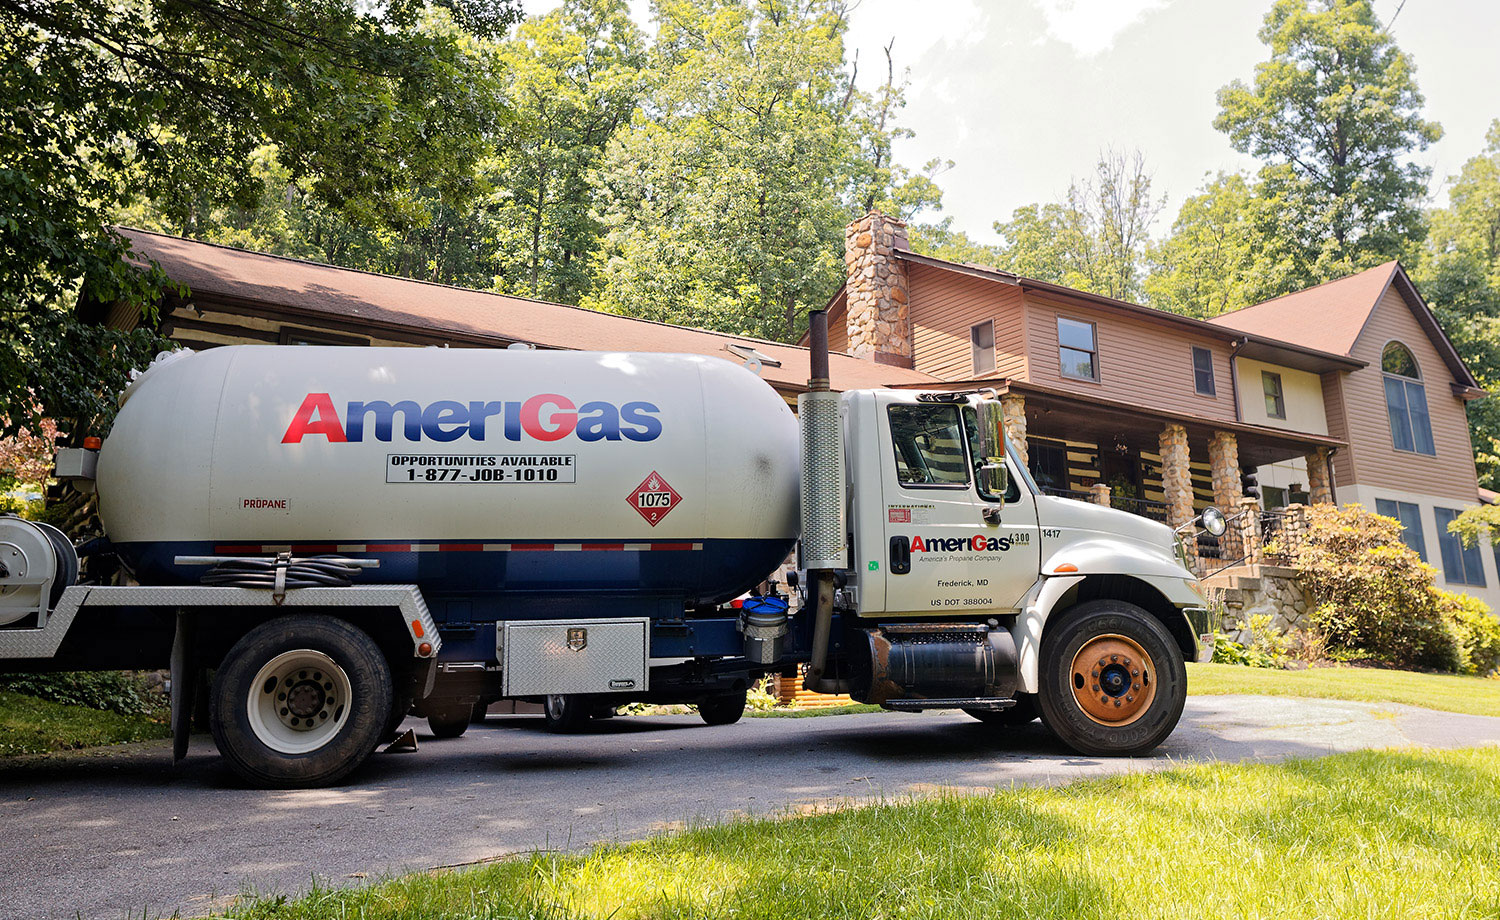 AmeriGas Tanker truck in front of a house.